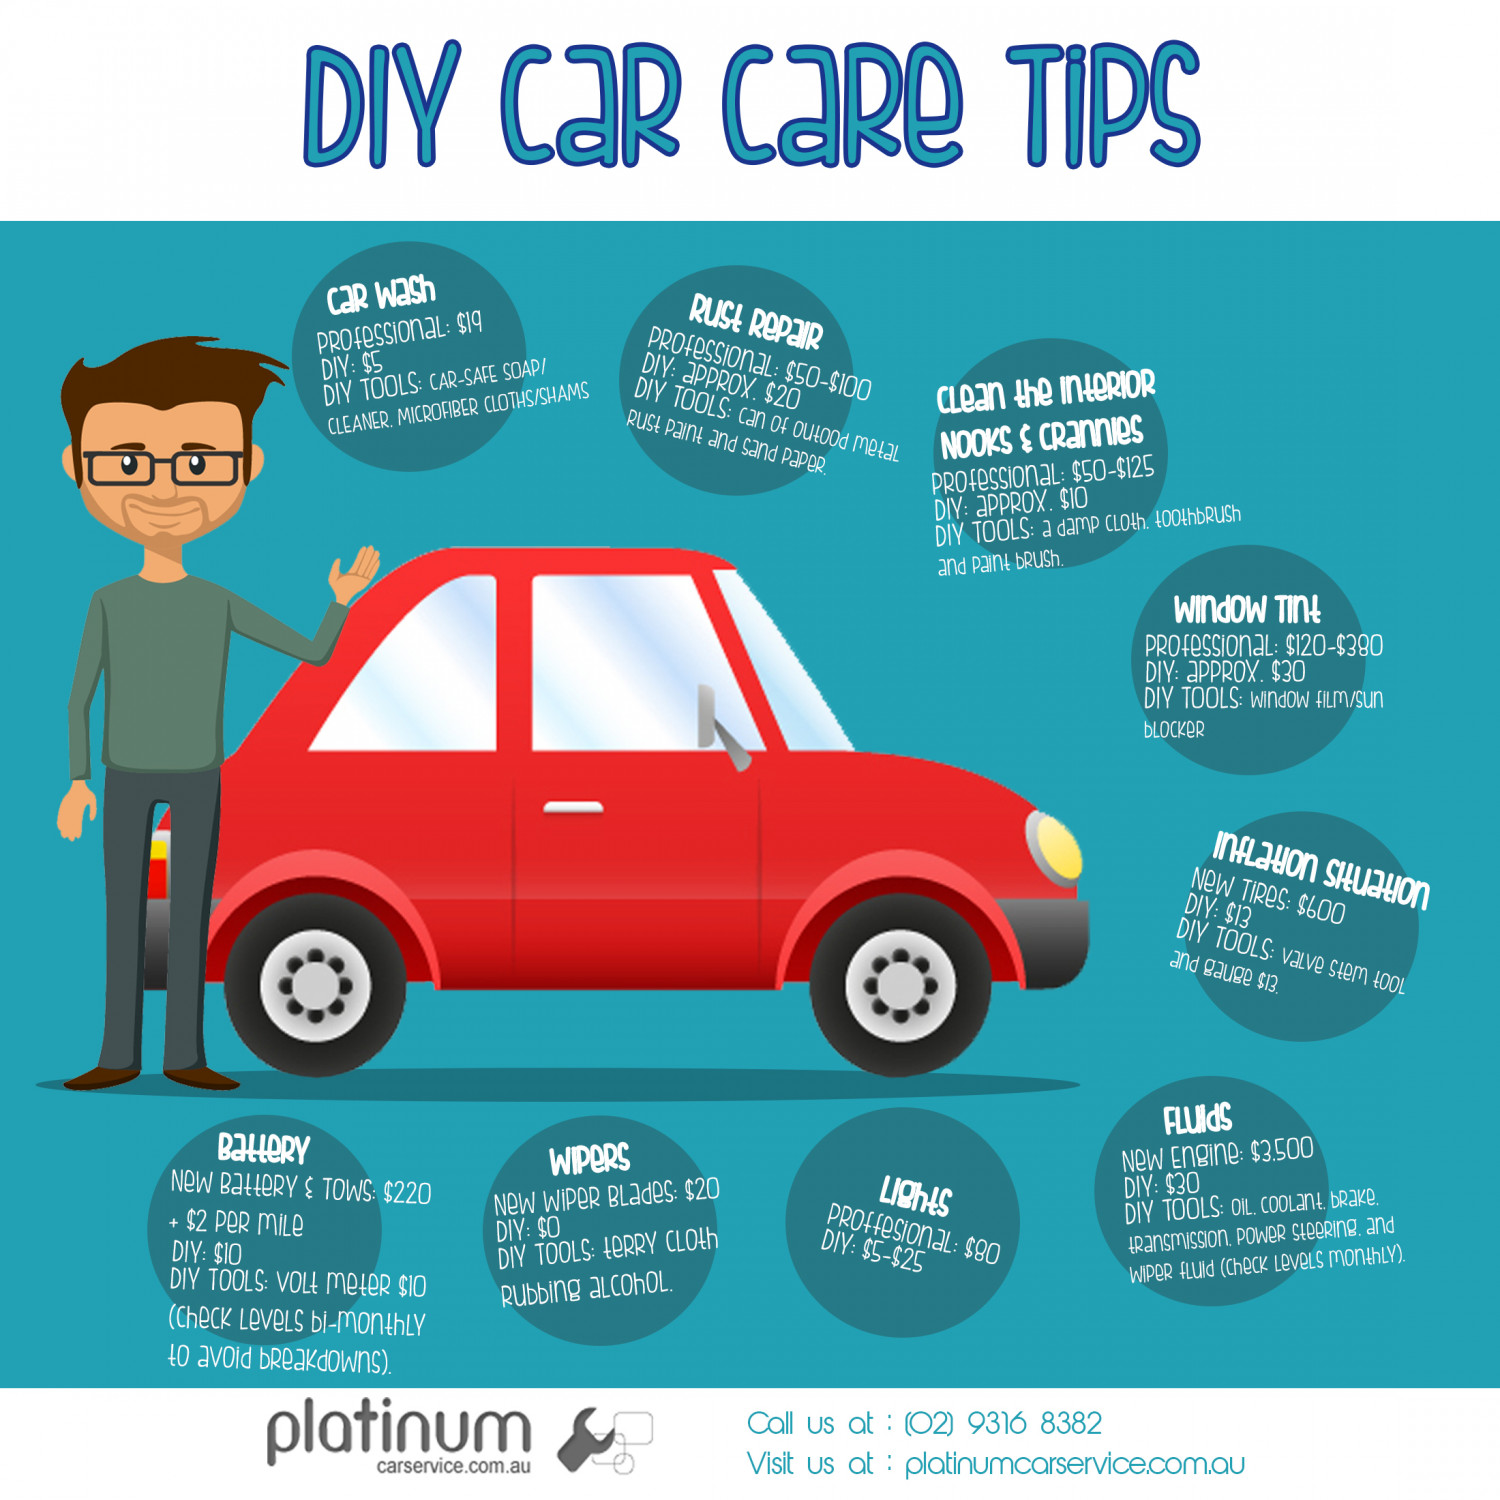 Diy car care tips visual diy car care tips infographic solutioingenieria Choice Image